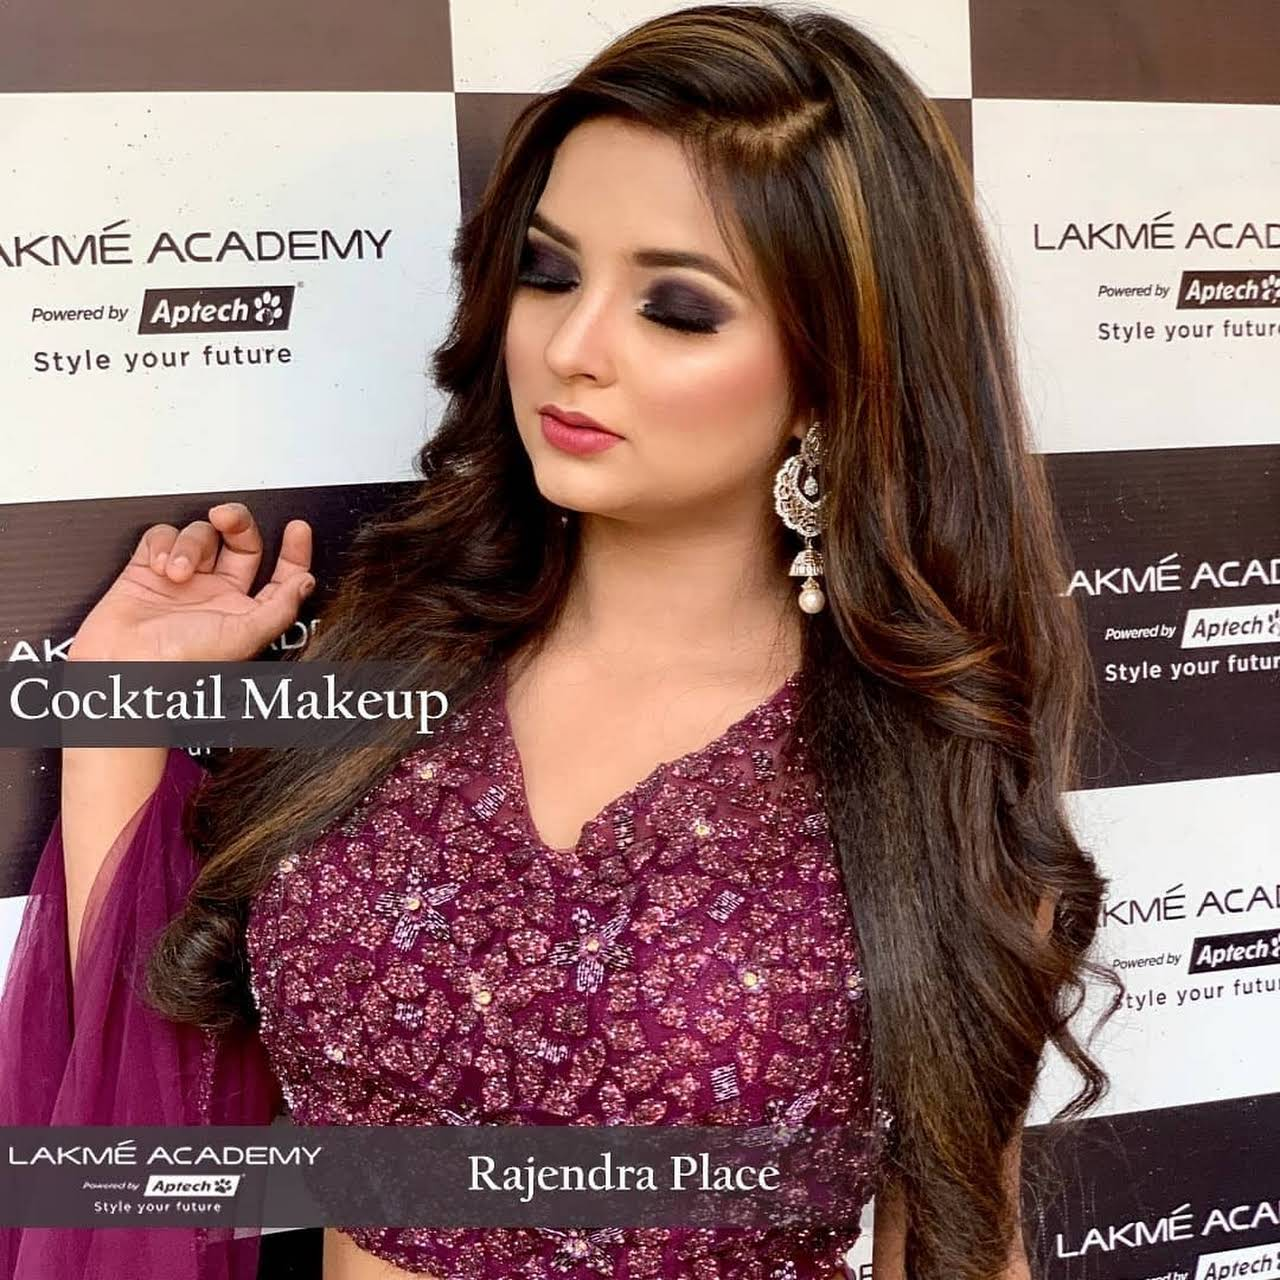 Lakme Academy Rajendra Place | Makeup Artist Course | Delhi - Make